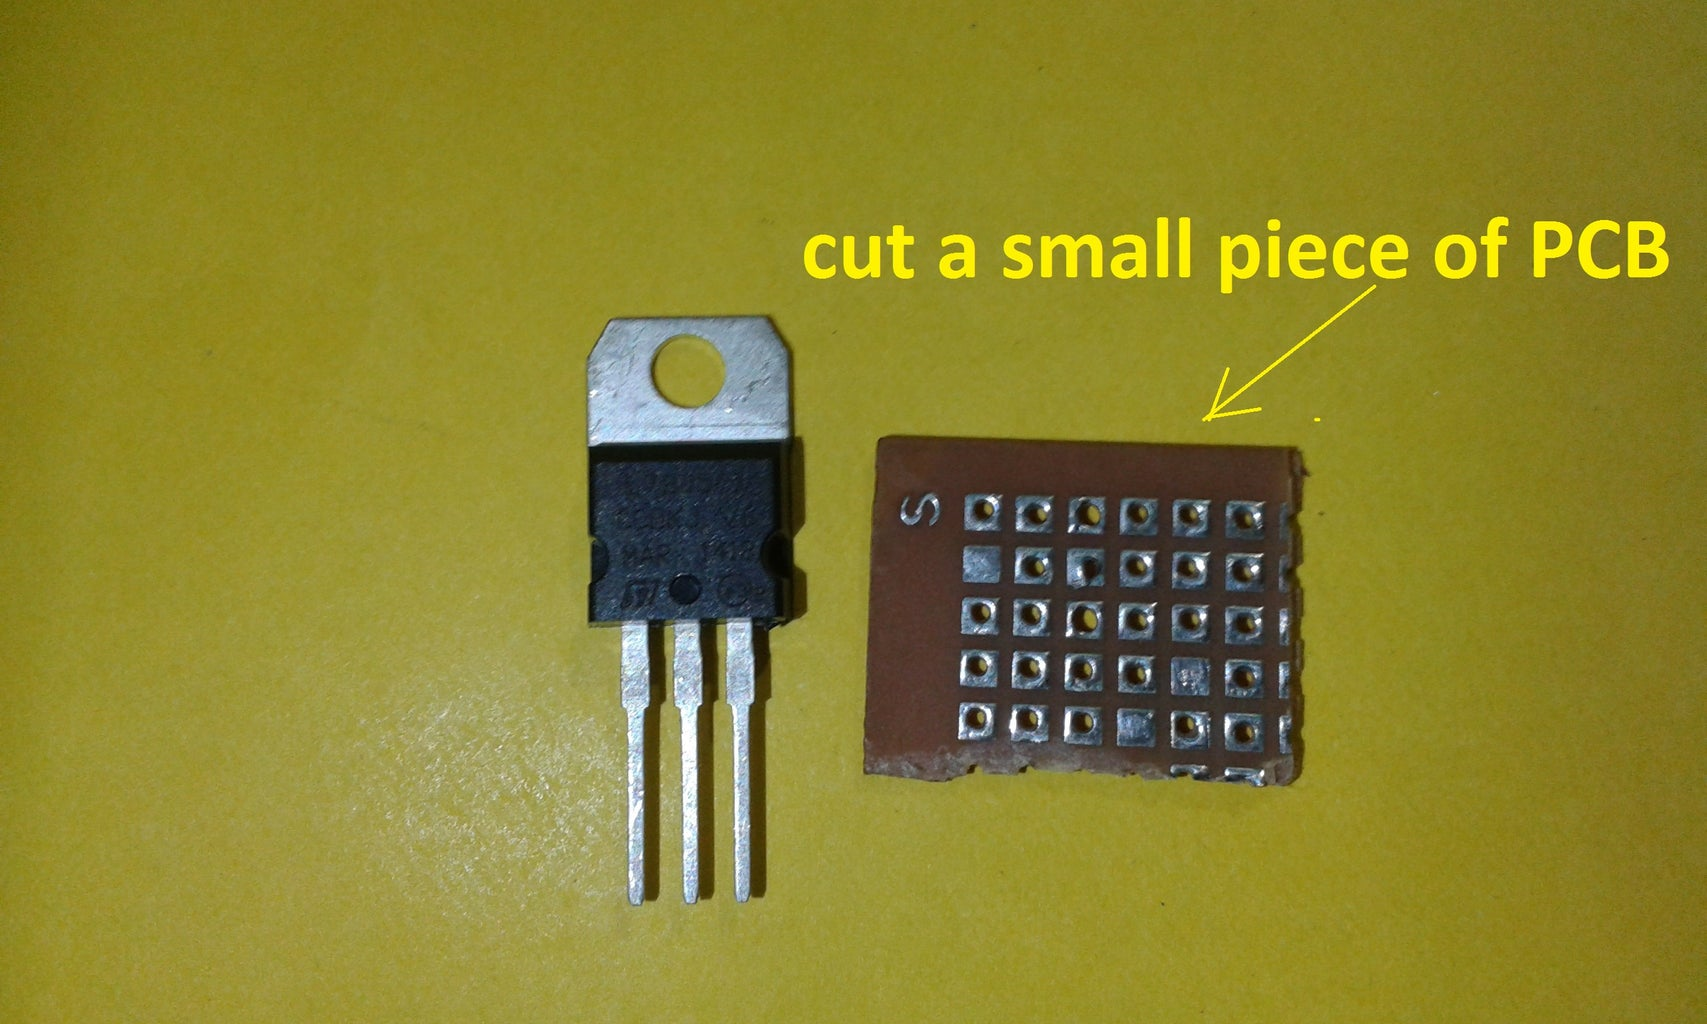 Cut the PCB and Solder the Components